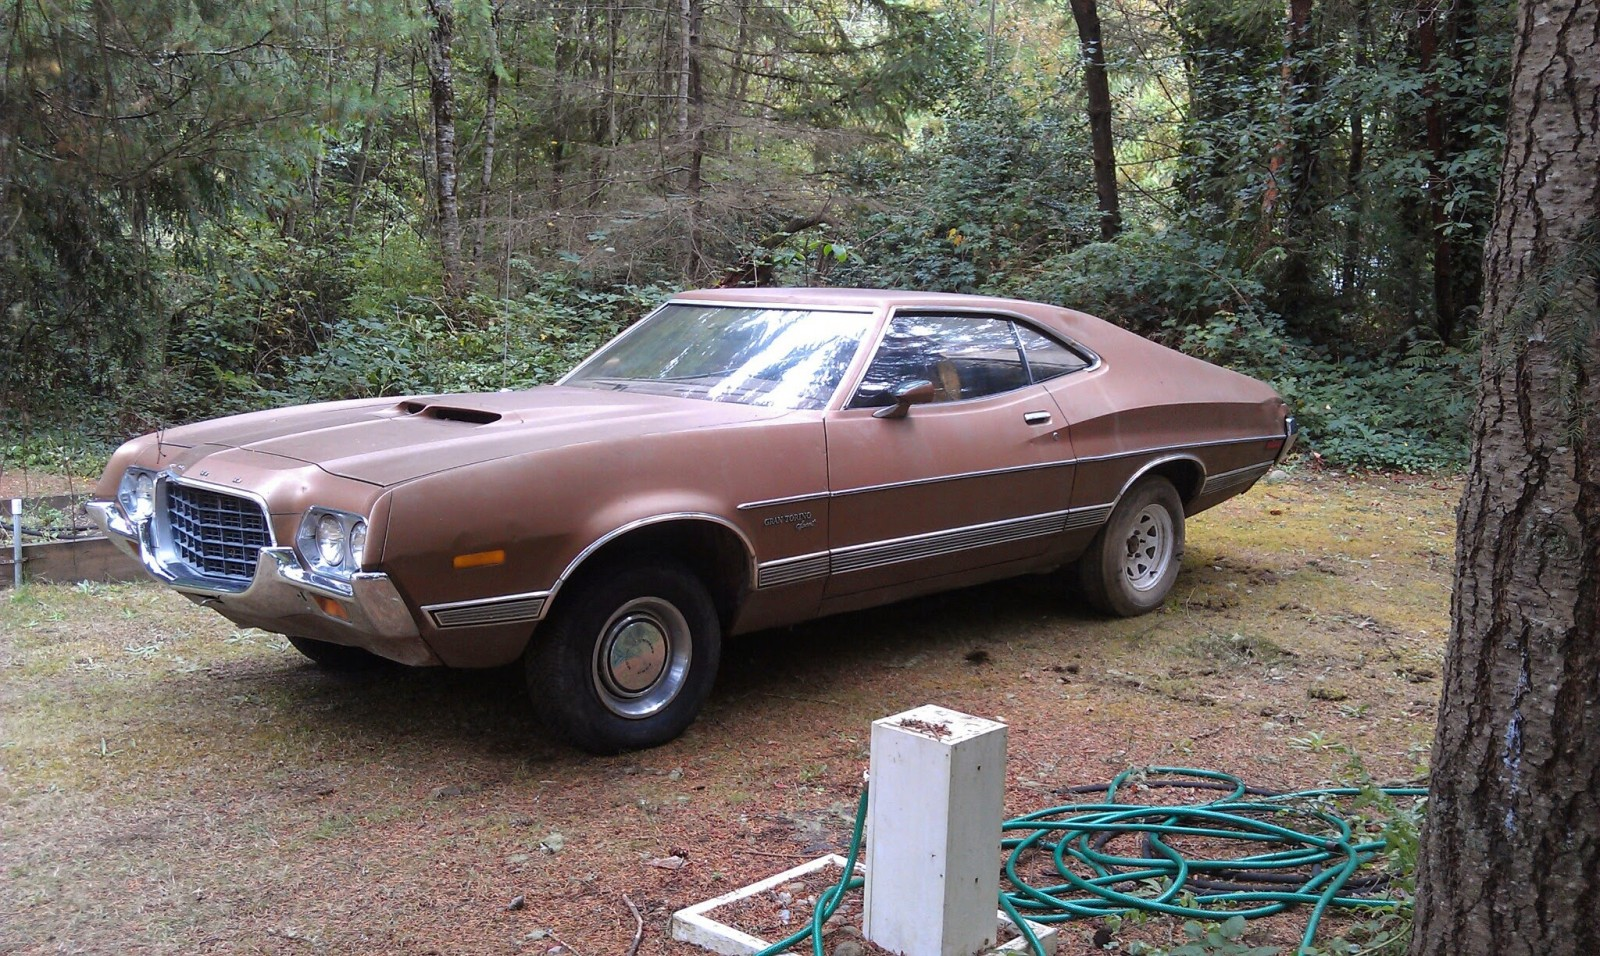 torino ford 2021 gran 1972 project specs 72 block mouth plain right